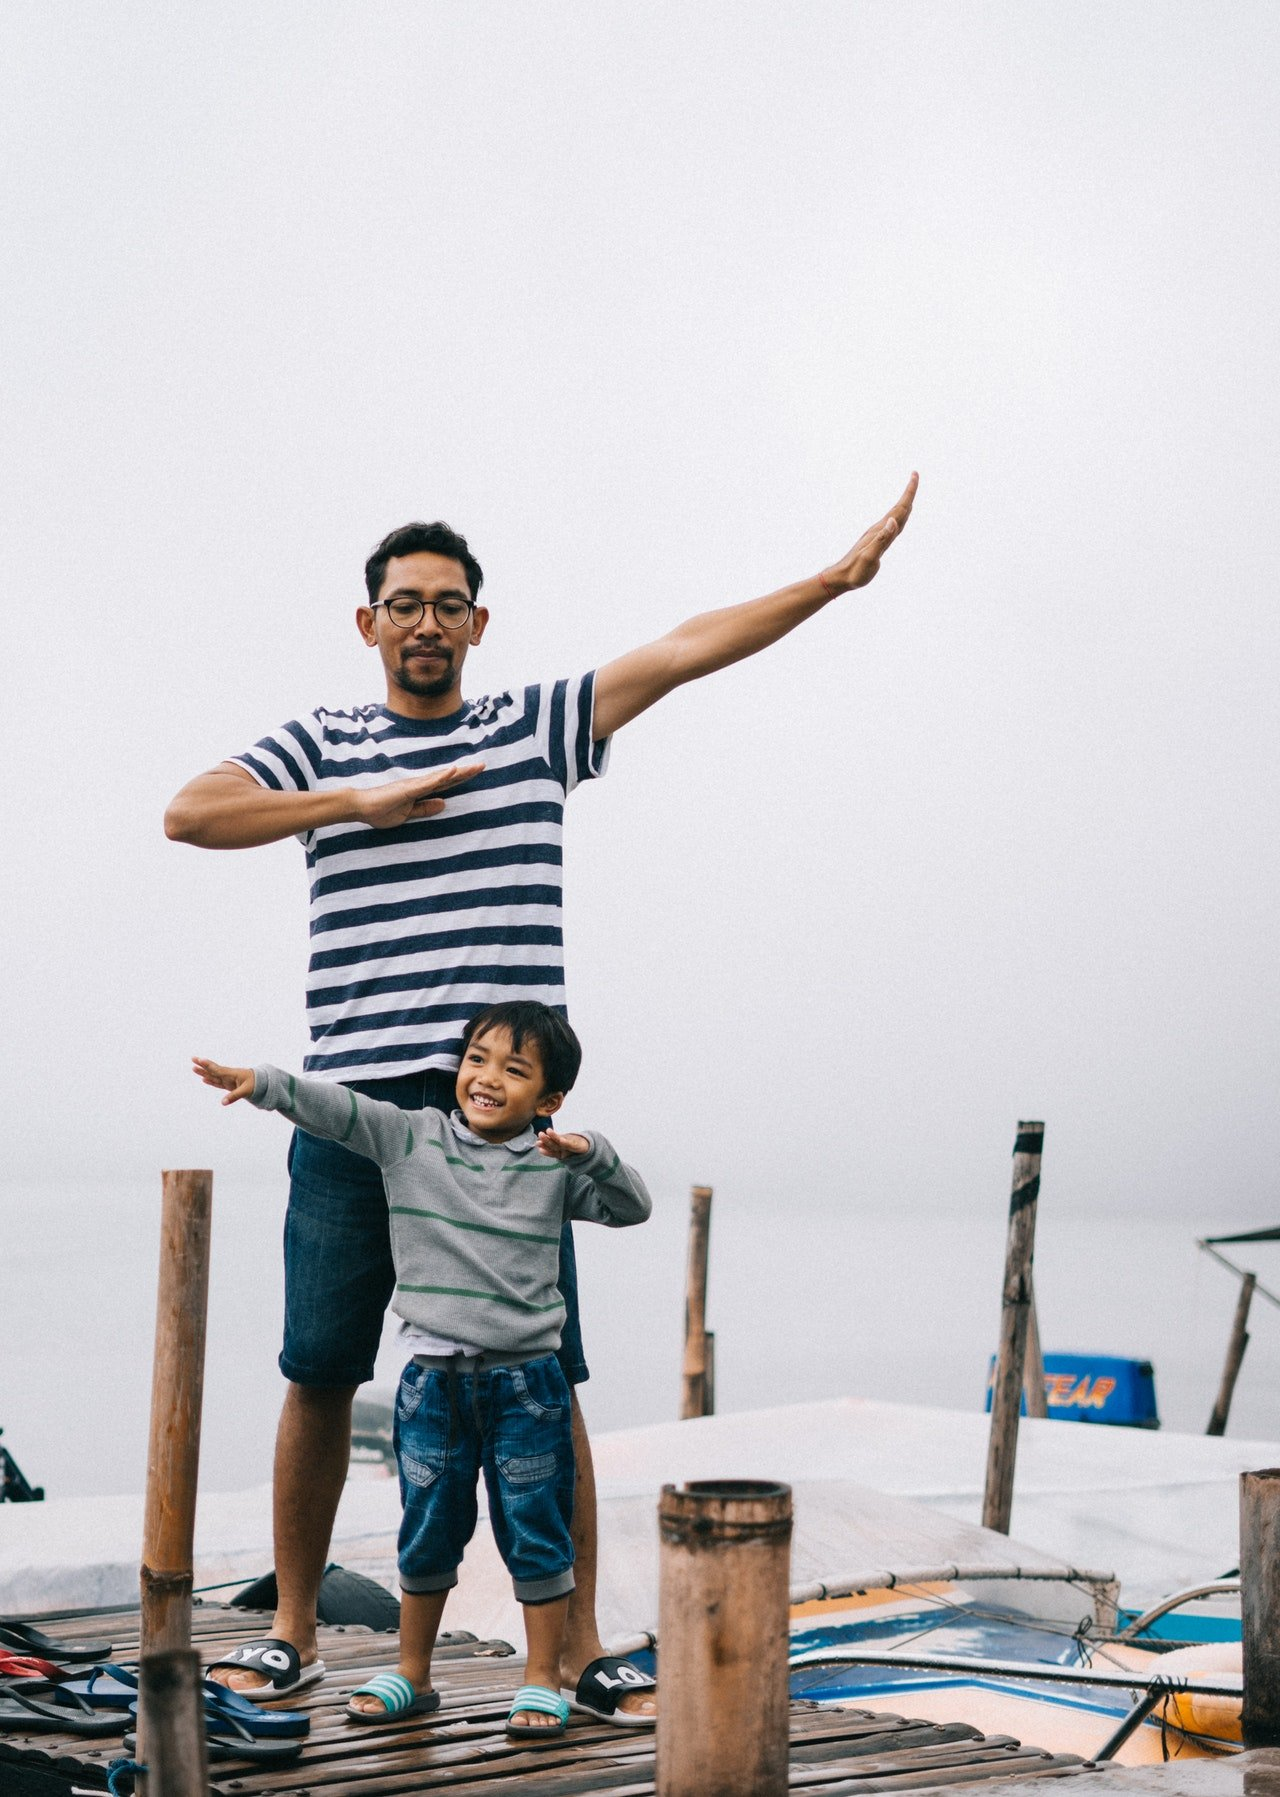 Father and son having a good time | Photo: Pexels